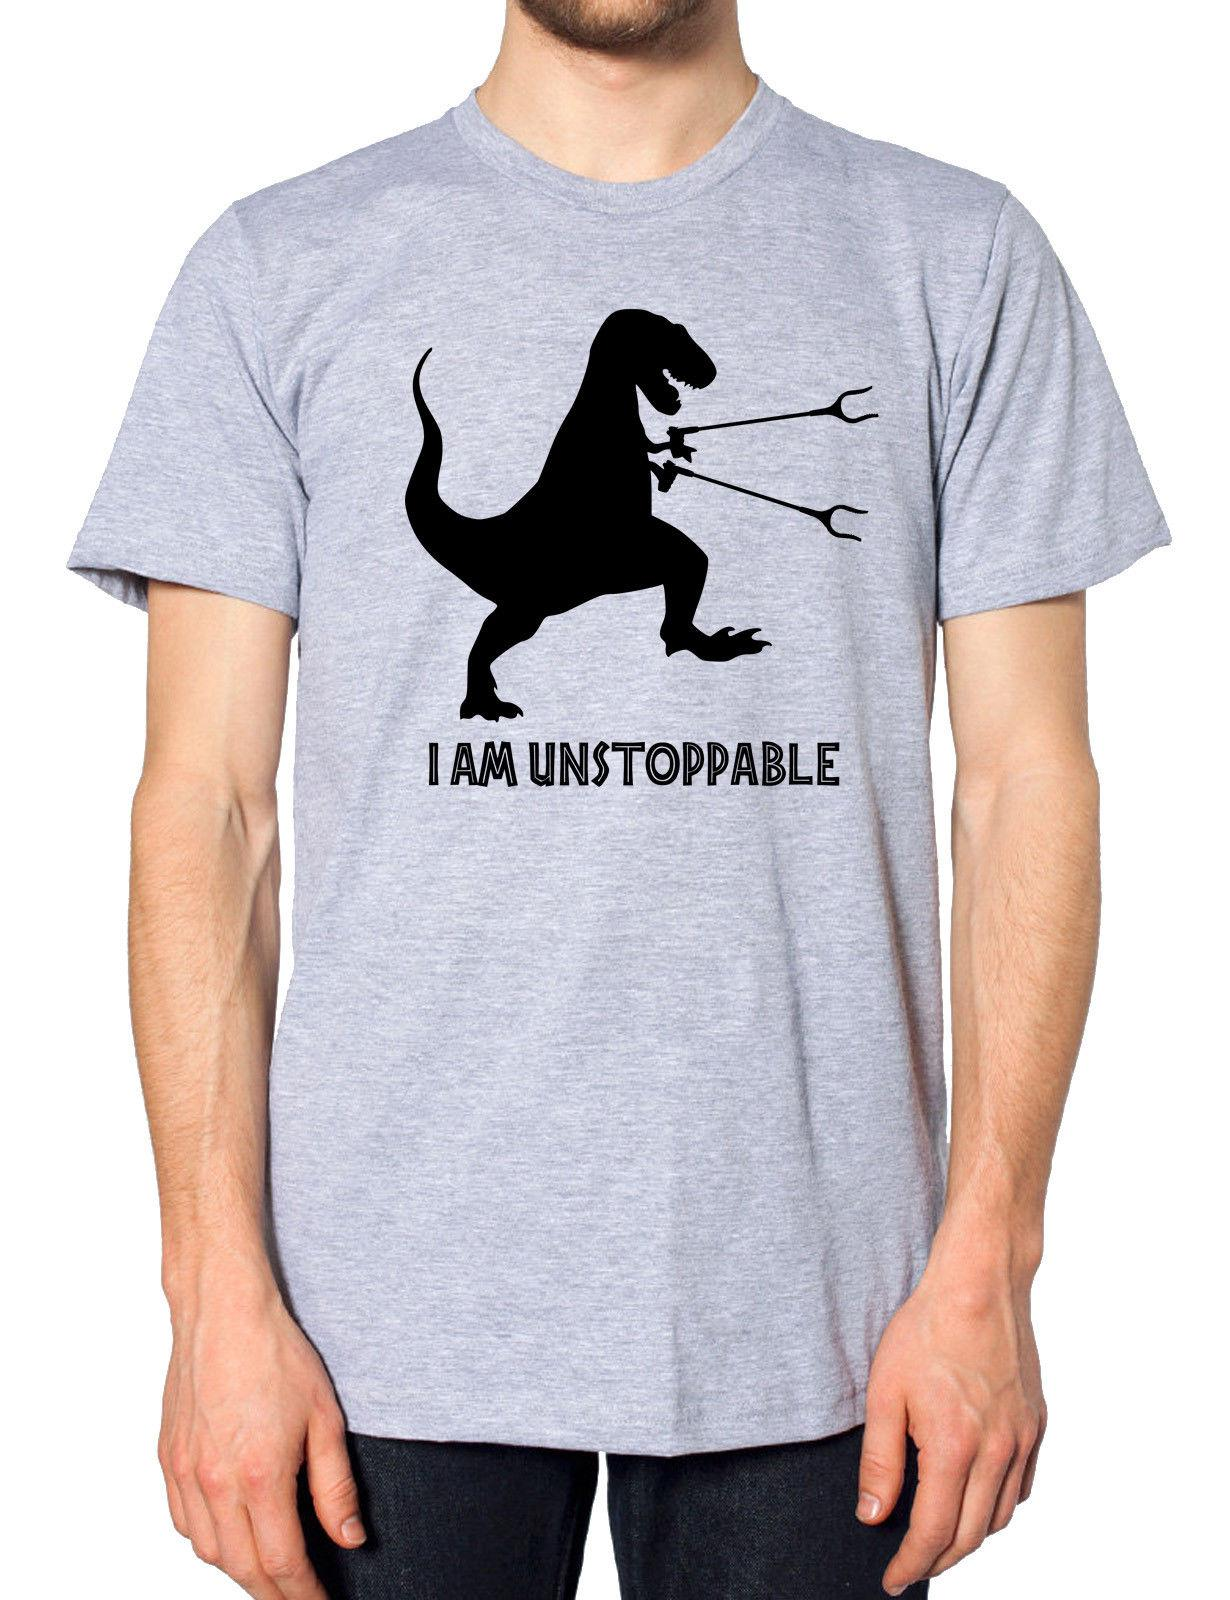 5a633b9e I Am Unstoppable T Rex T Shirt Tee Men Dinosaur Boy Gift Funny Tshirt Top  J8 Brand Shirts Jeans Print Online Buy T Shirt Best T Shirt Shop Online  From ...